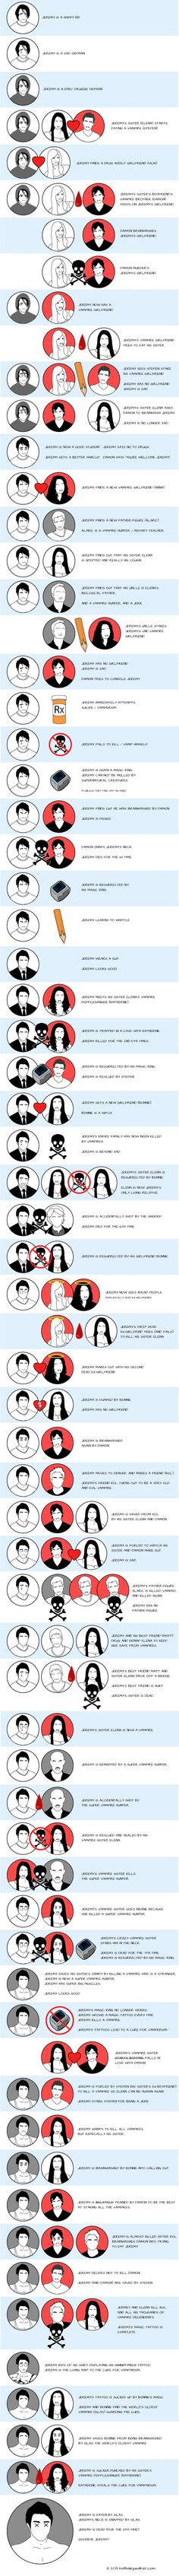 The Life and Plot Twists of Jeremy Gilbert...until he's a living person again in S5 and hopefully for all of S6, but that might be asking just a bit much of tvd....: